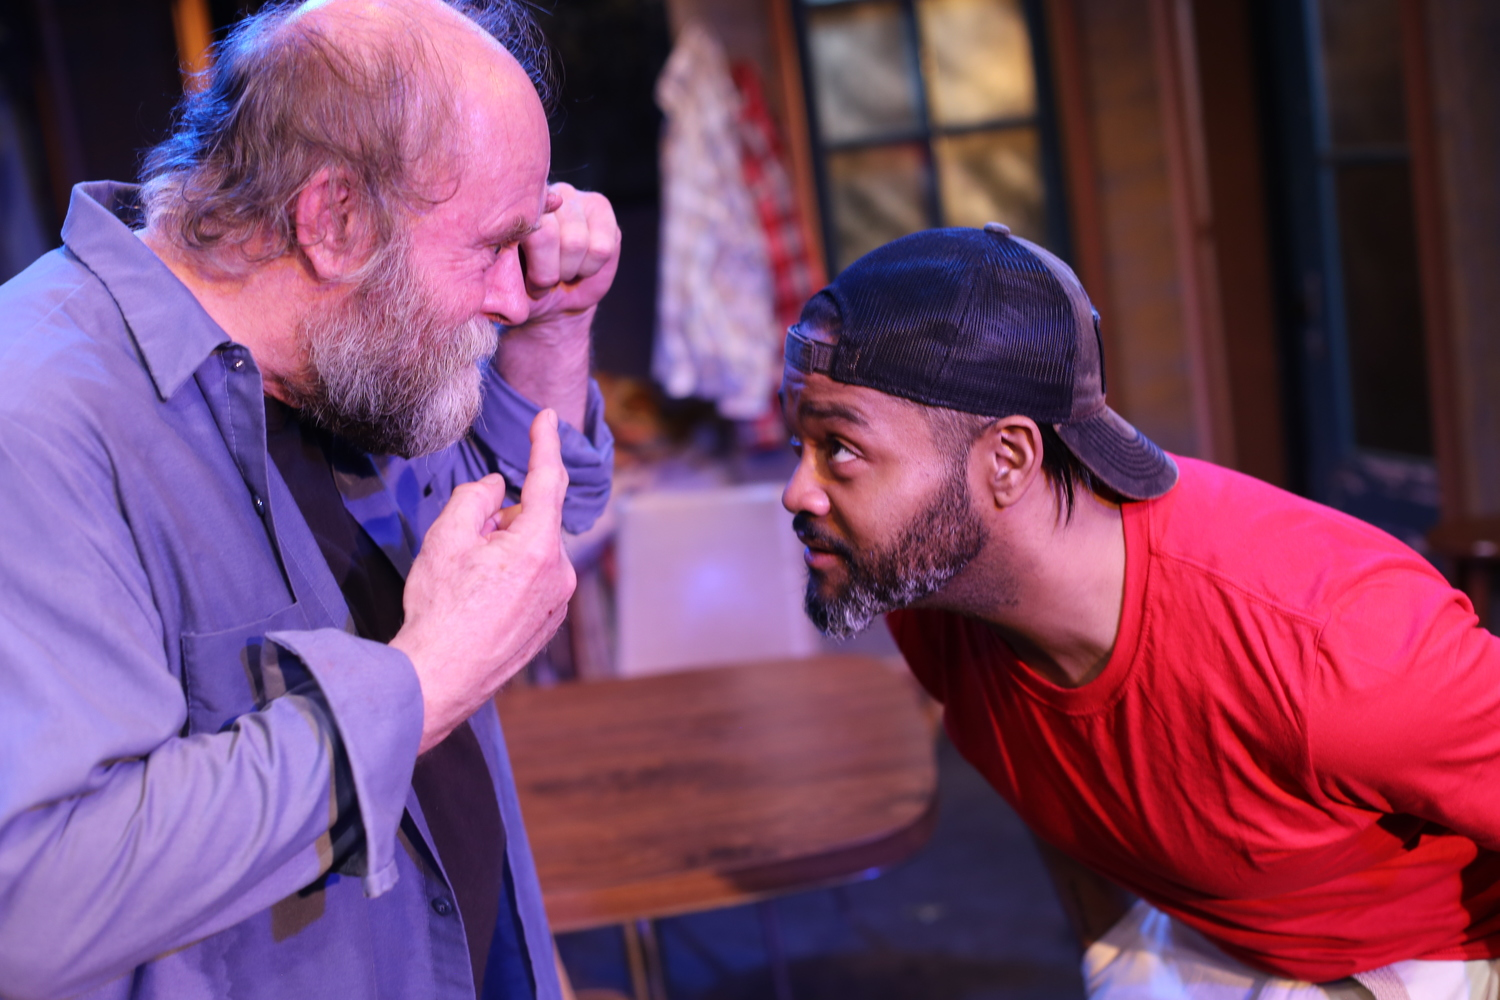 BWW Review: Acting Soars in LATE HENRY MOSS at None Too Fragile